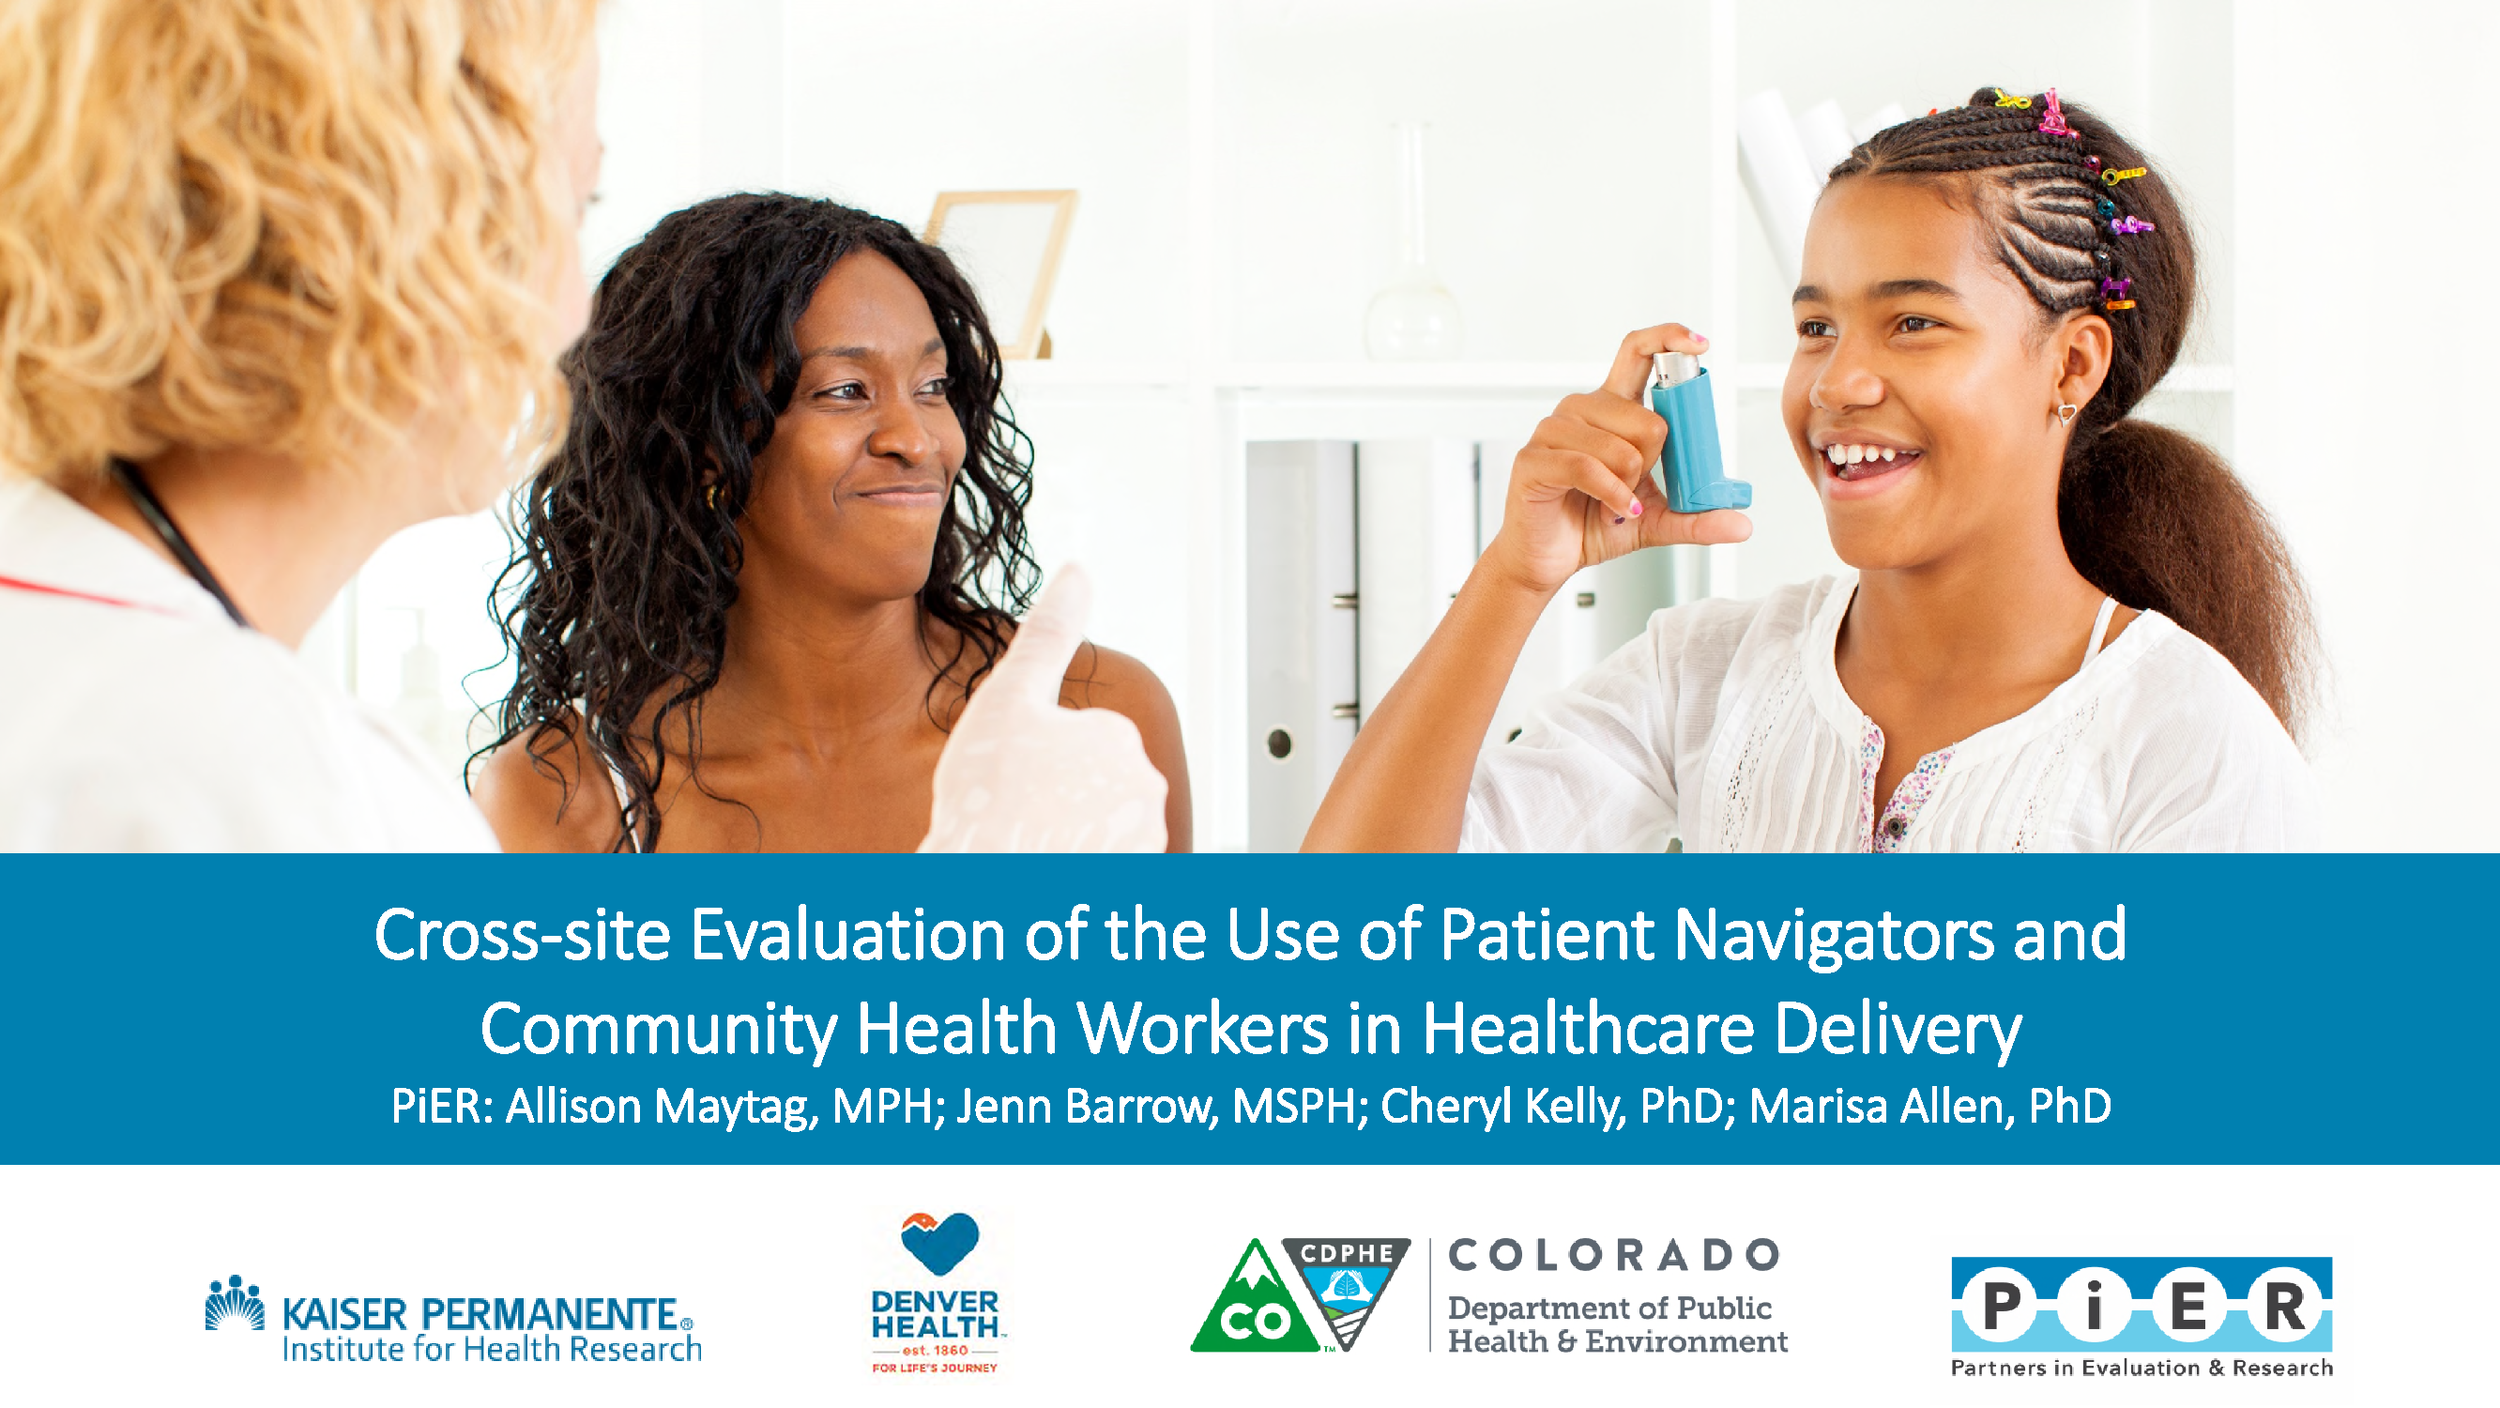 CCPD Patient Navigator and Community Health Worker Evaluation 2018